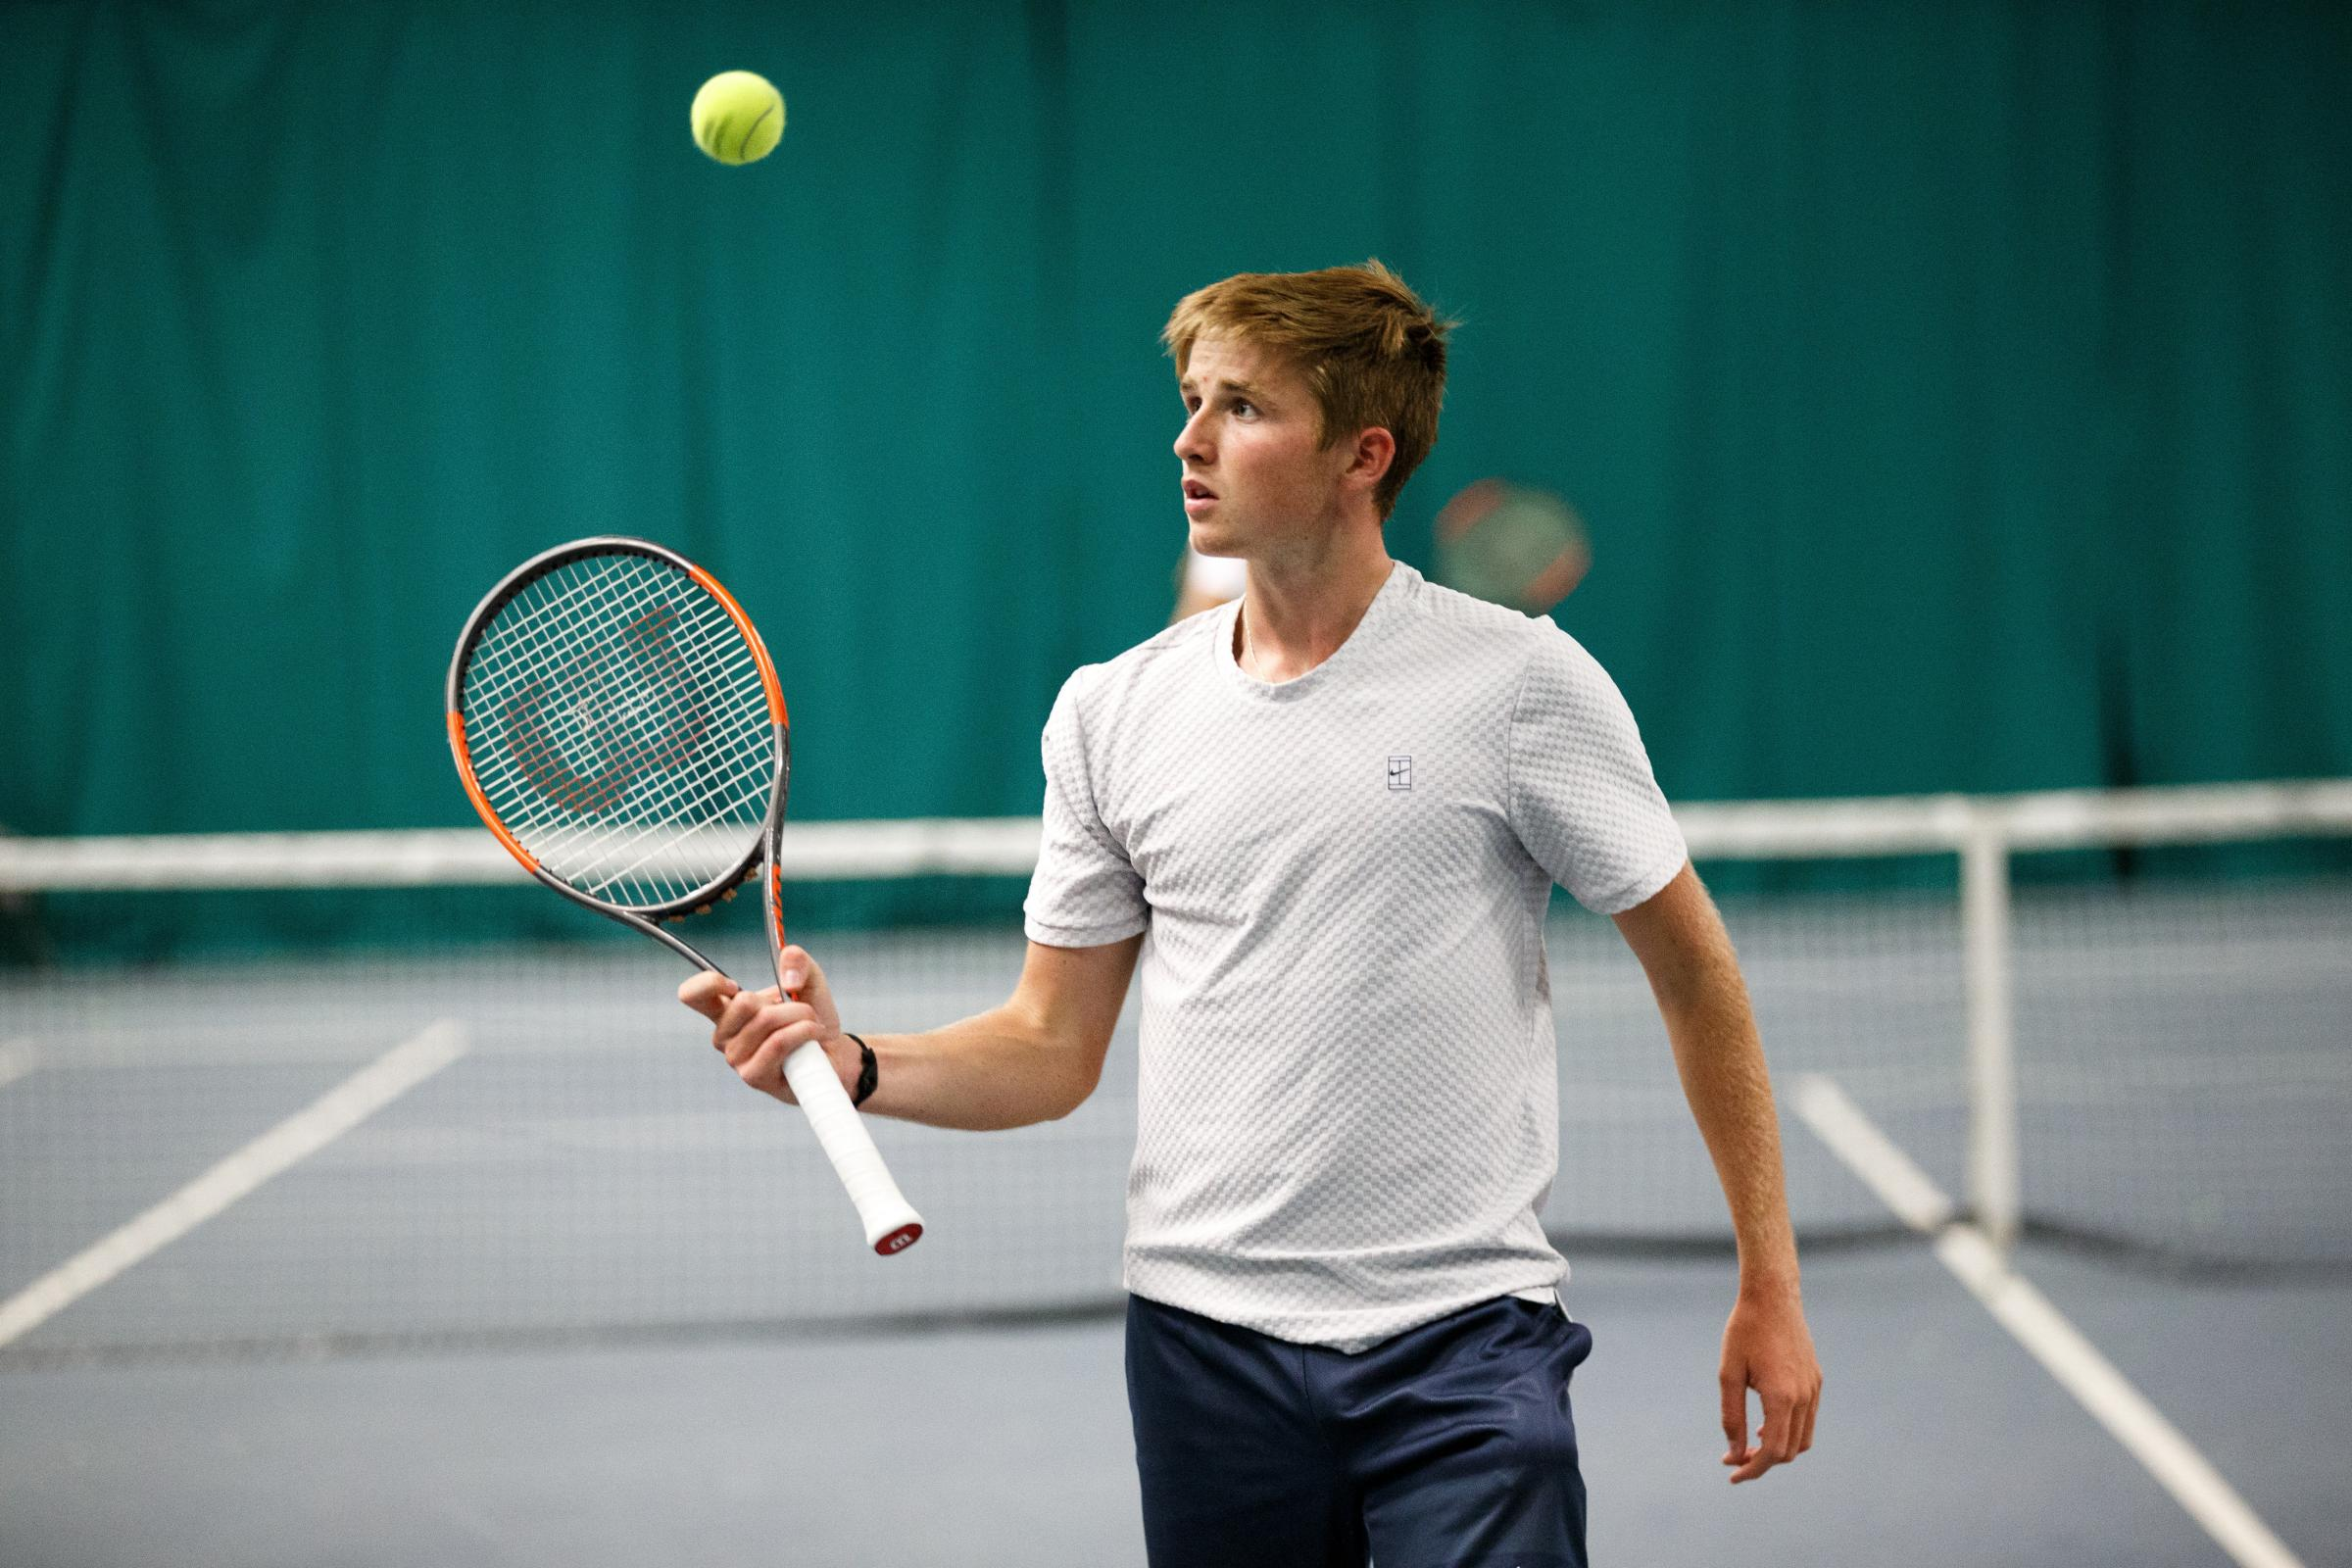 Tennis player Aidan McHugh at Scotstoun...Picture Robert Perry 30th Jan 2017..Must credit photo to Robert Perry.FEE PAYABLE FOR REPRO USE.FEE PAYABLE FOR ALL INTERNET USE.www.robertperry.co.uk.NB -This image is not to be distributed without the prior cons